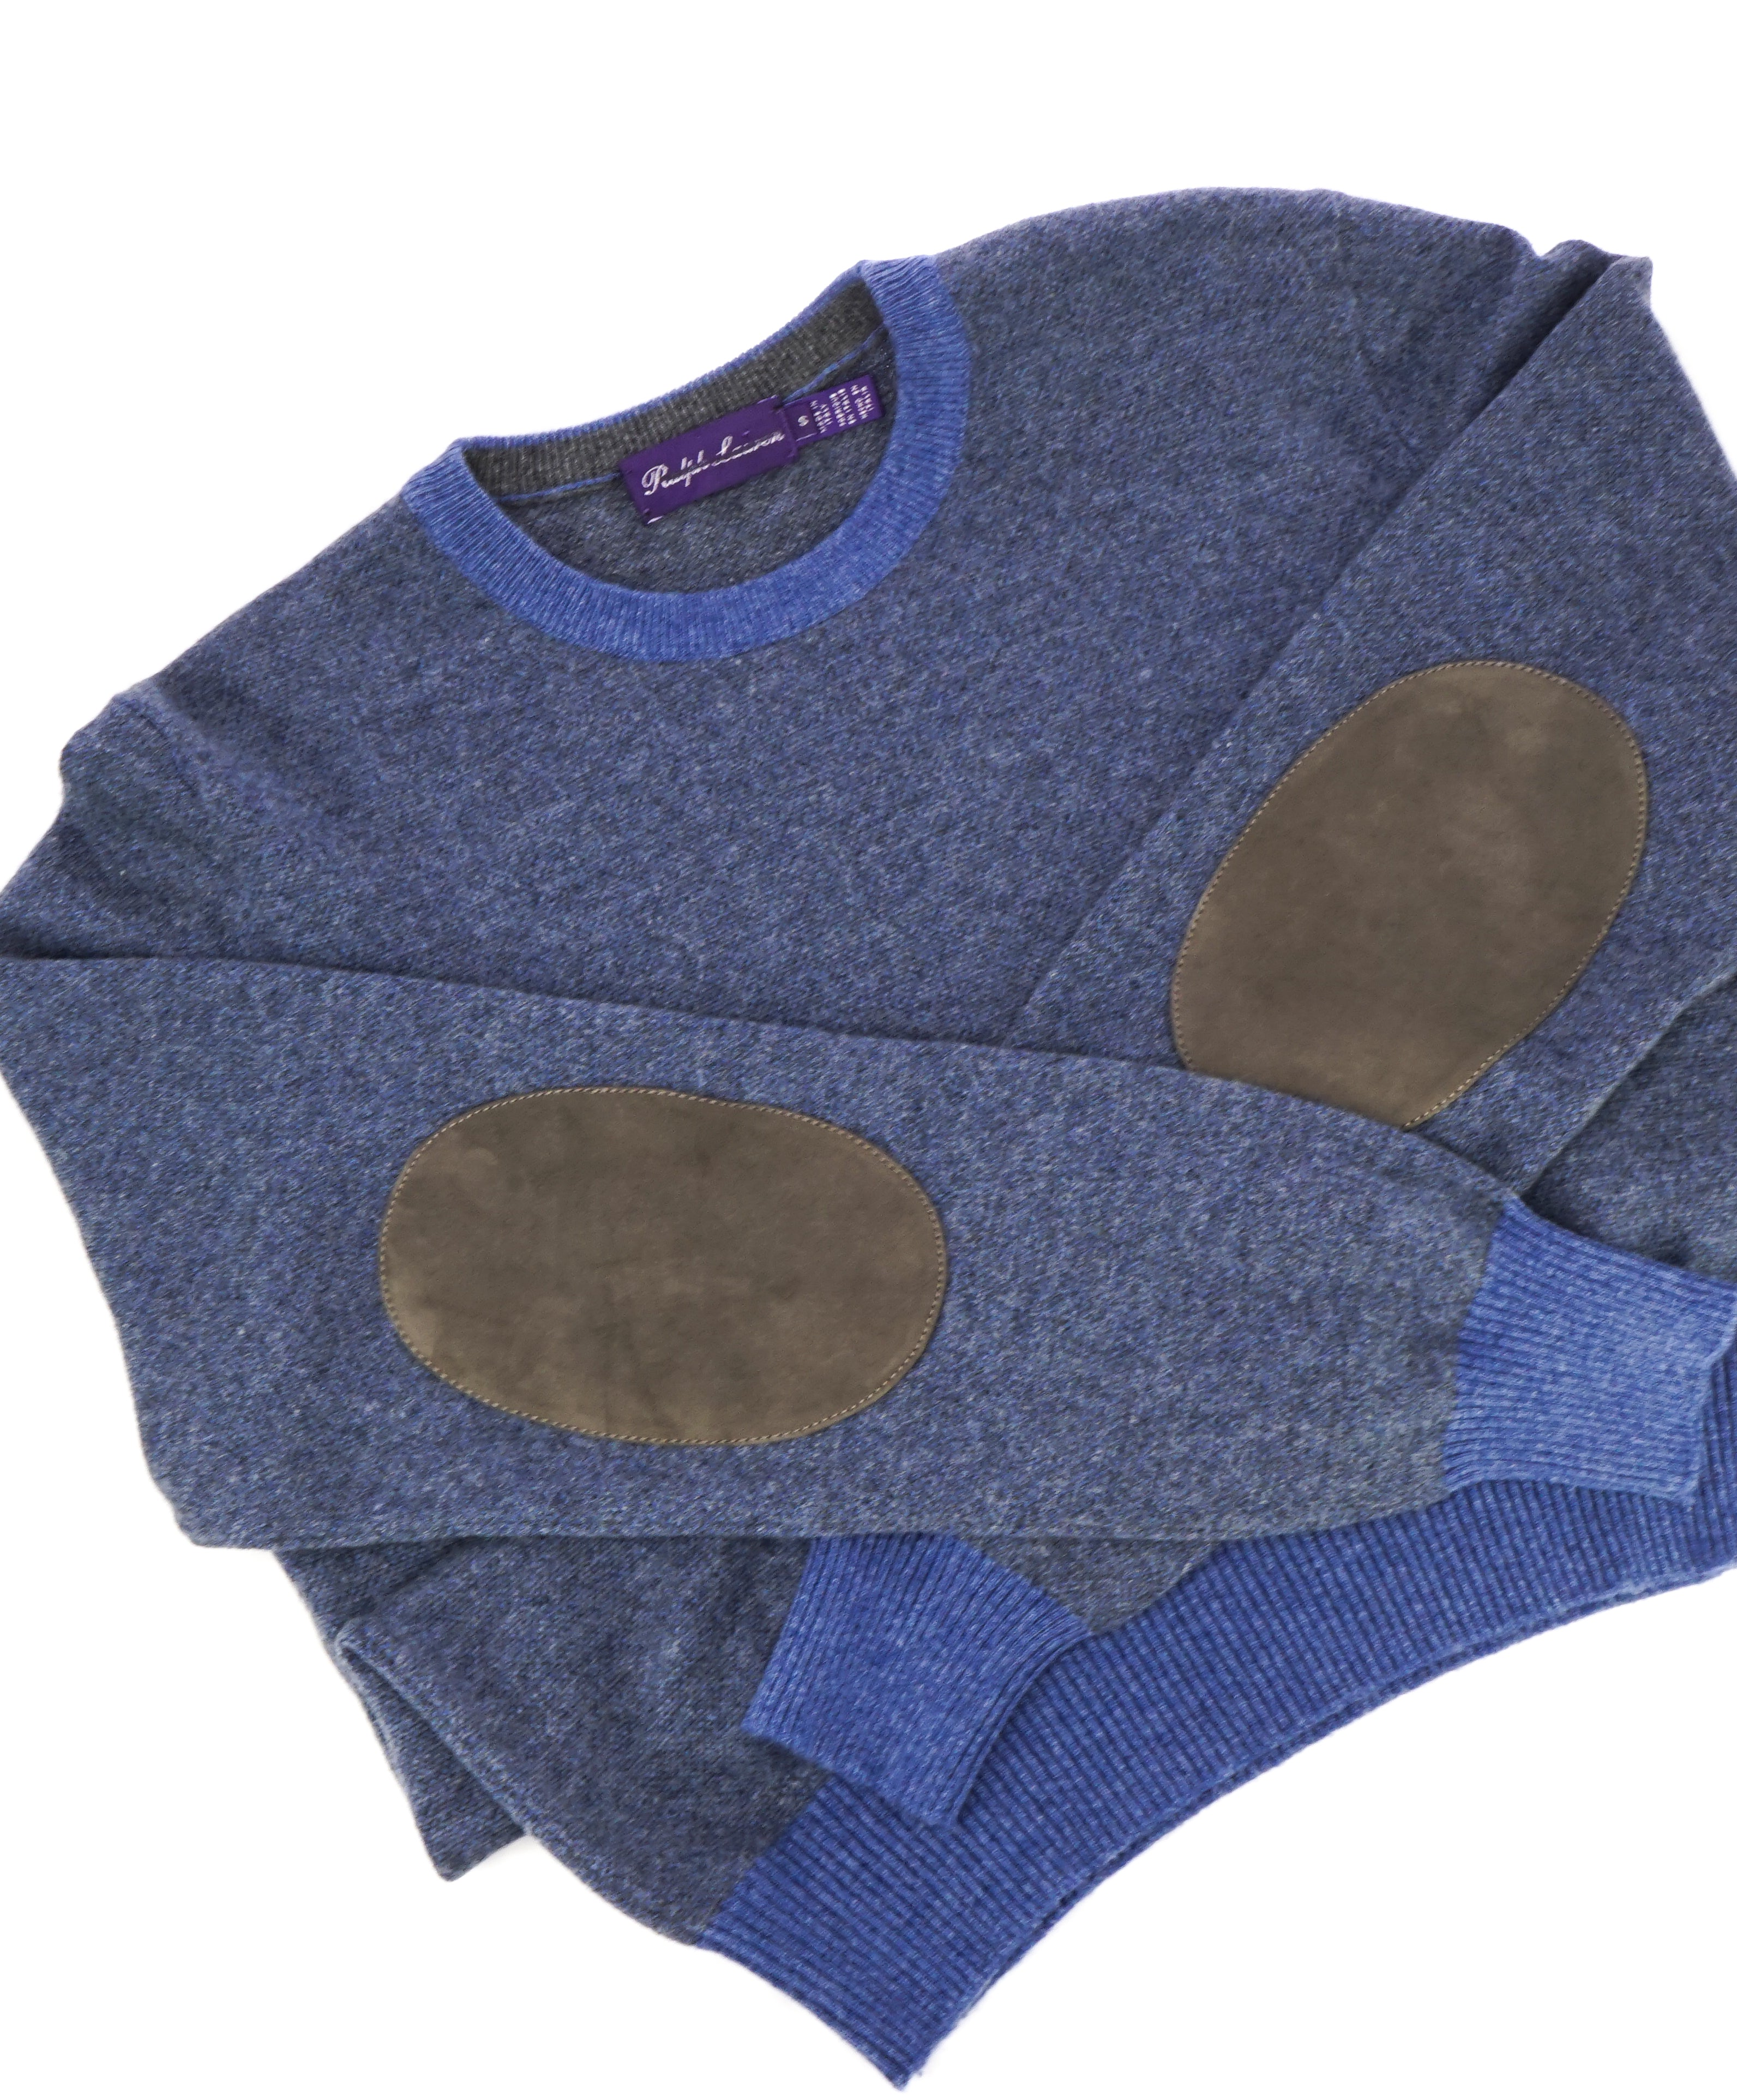 RALPH LAUREN PURPLE LABEL - PURE CASHMERE & SUEDE Crewneck Sweater - S